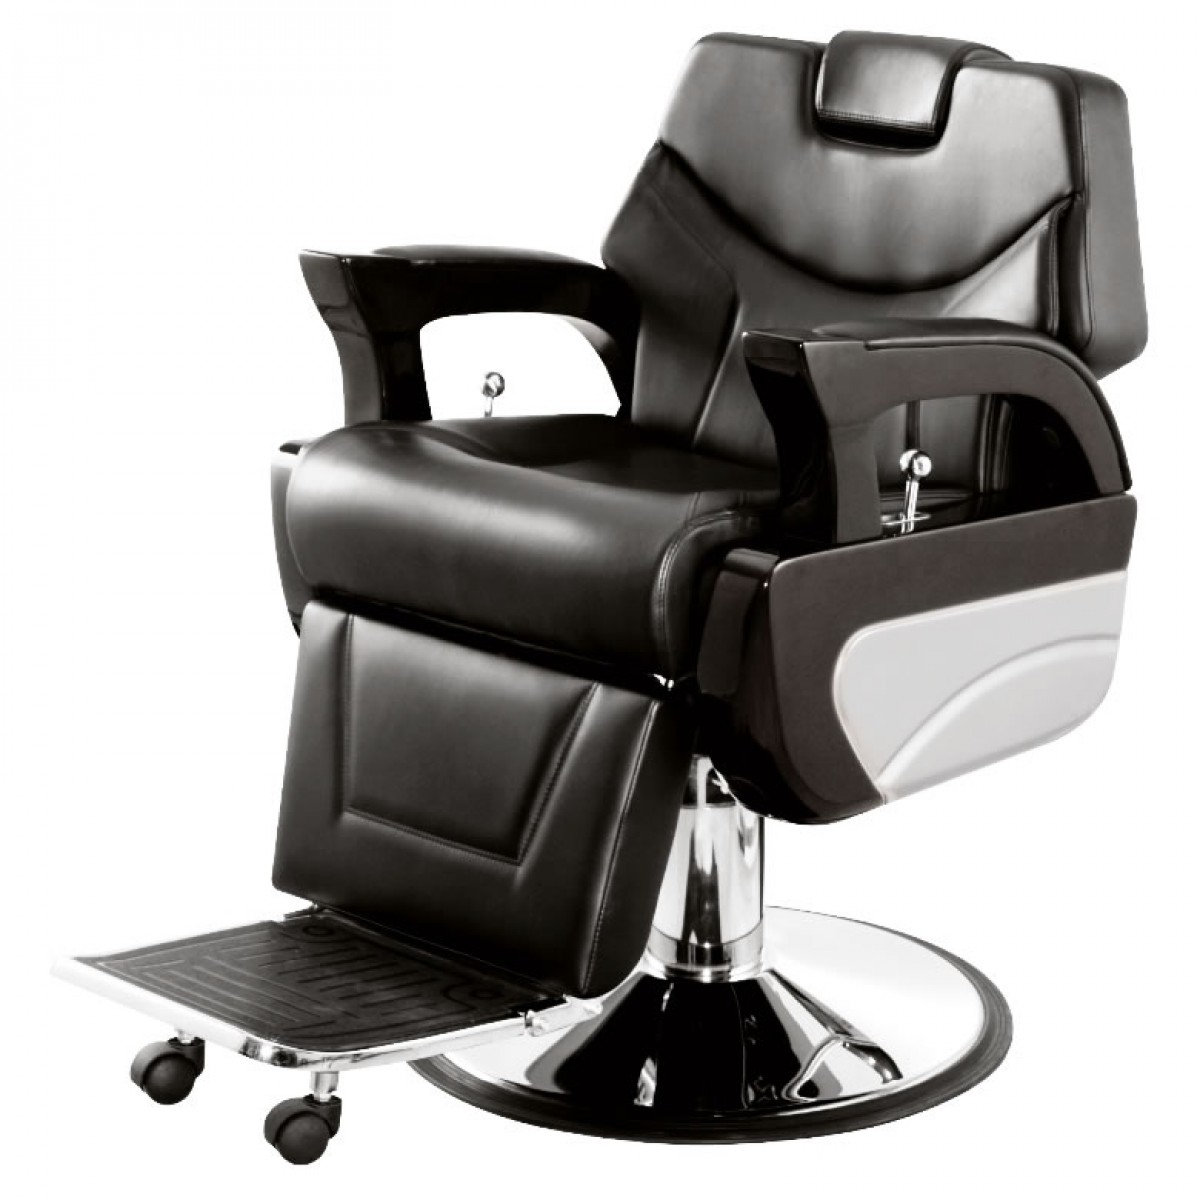 """AUGUSTO"" Heavy Duty Barber Chairs, Heavy Duty Barbershop Chairs"